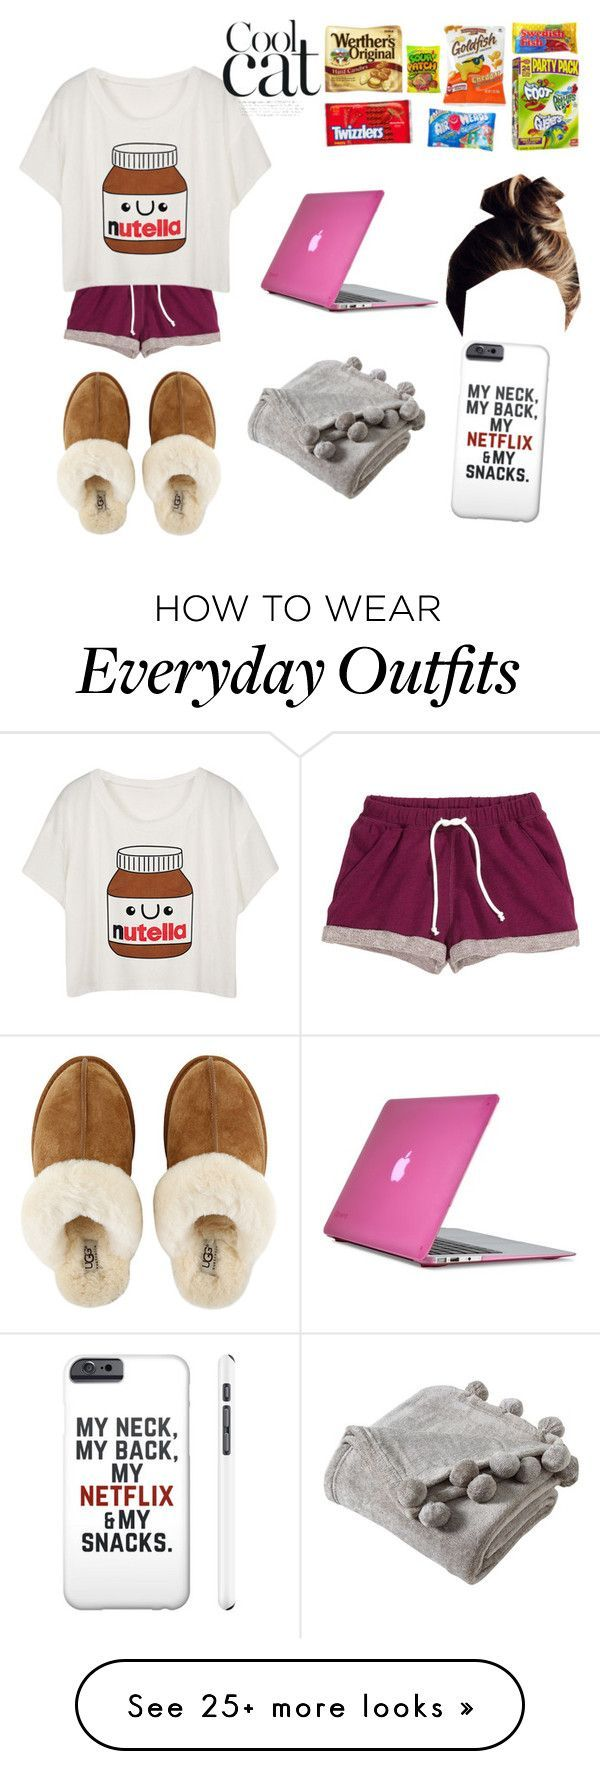 """""""My outfit everyday during break"""" by elisabethbstylin on Polyvore featuring H&M, UGG Australia, Speck and Victoria Classics Check our selection UGG articles in our shop!"""